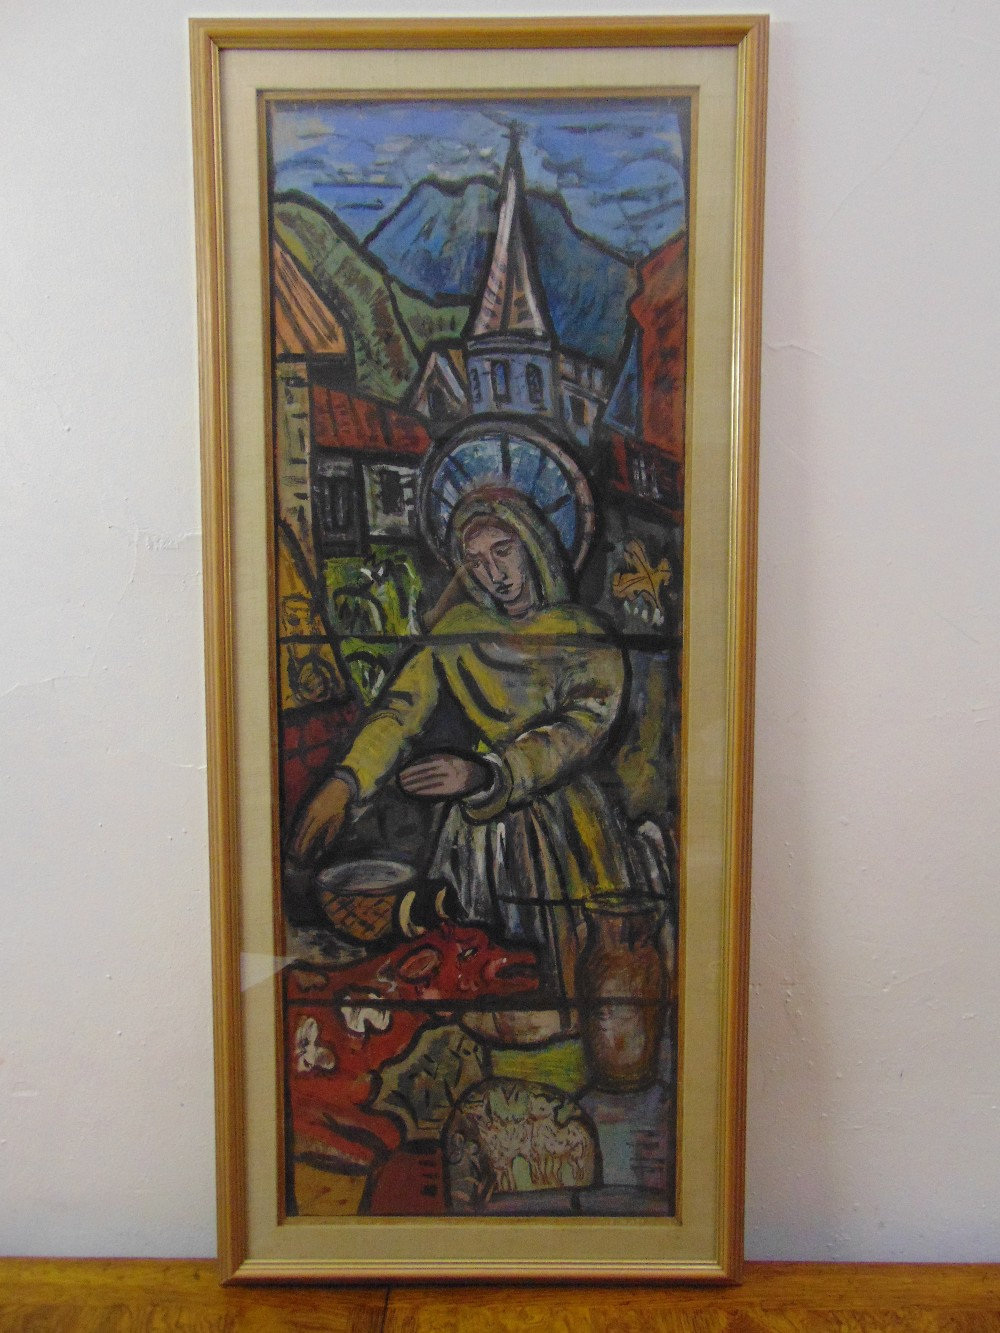 Evie Sydney Hone 1894-1955, framed and glazed gouache on board study of the stained glass window